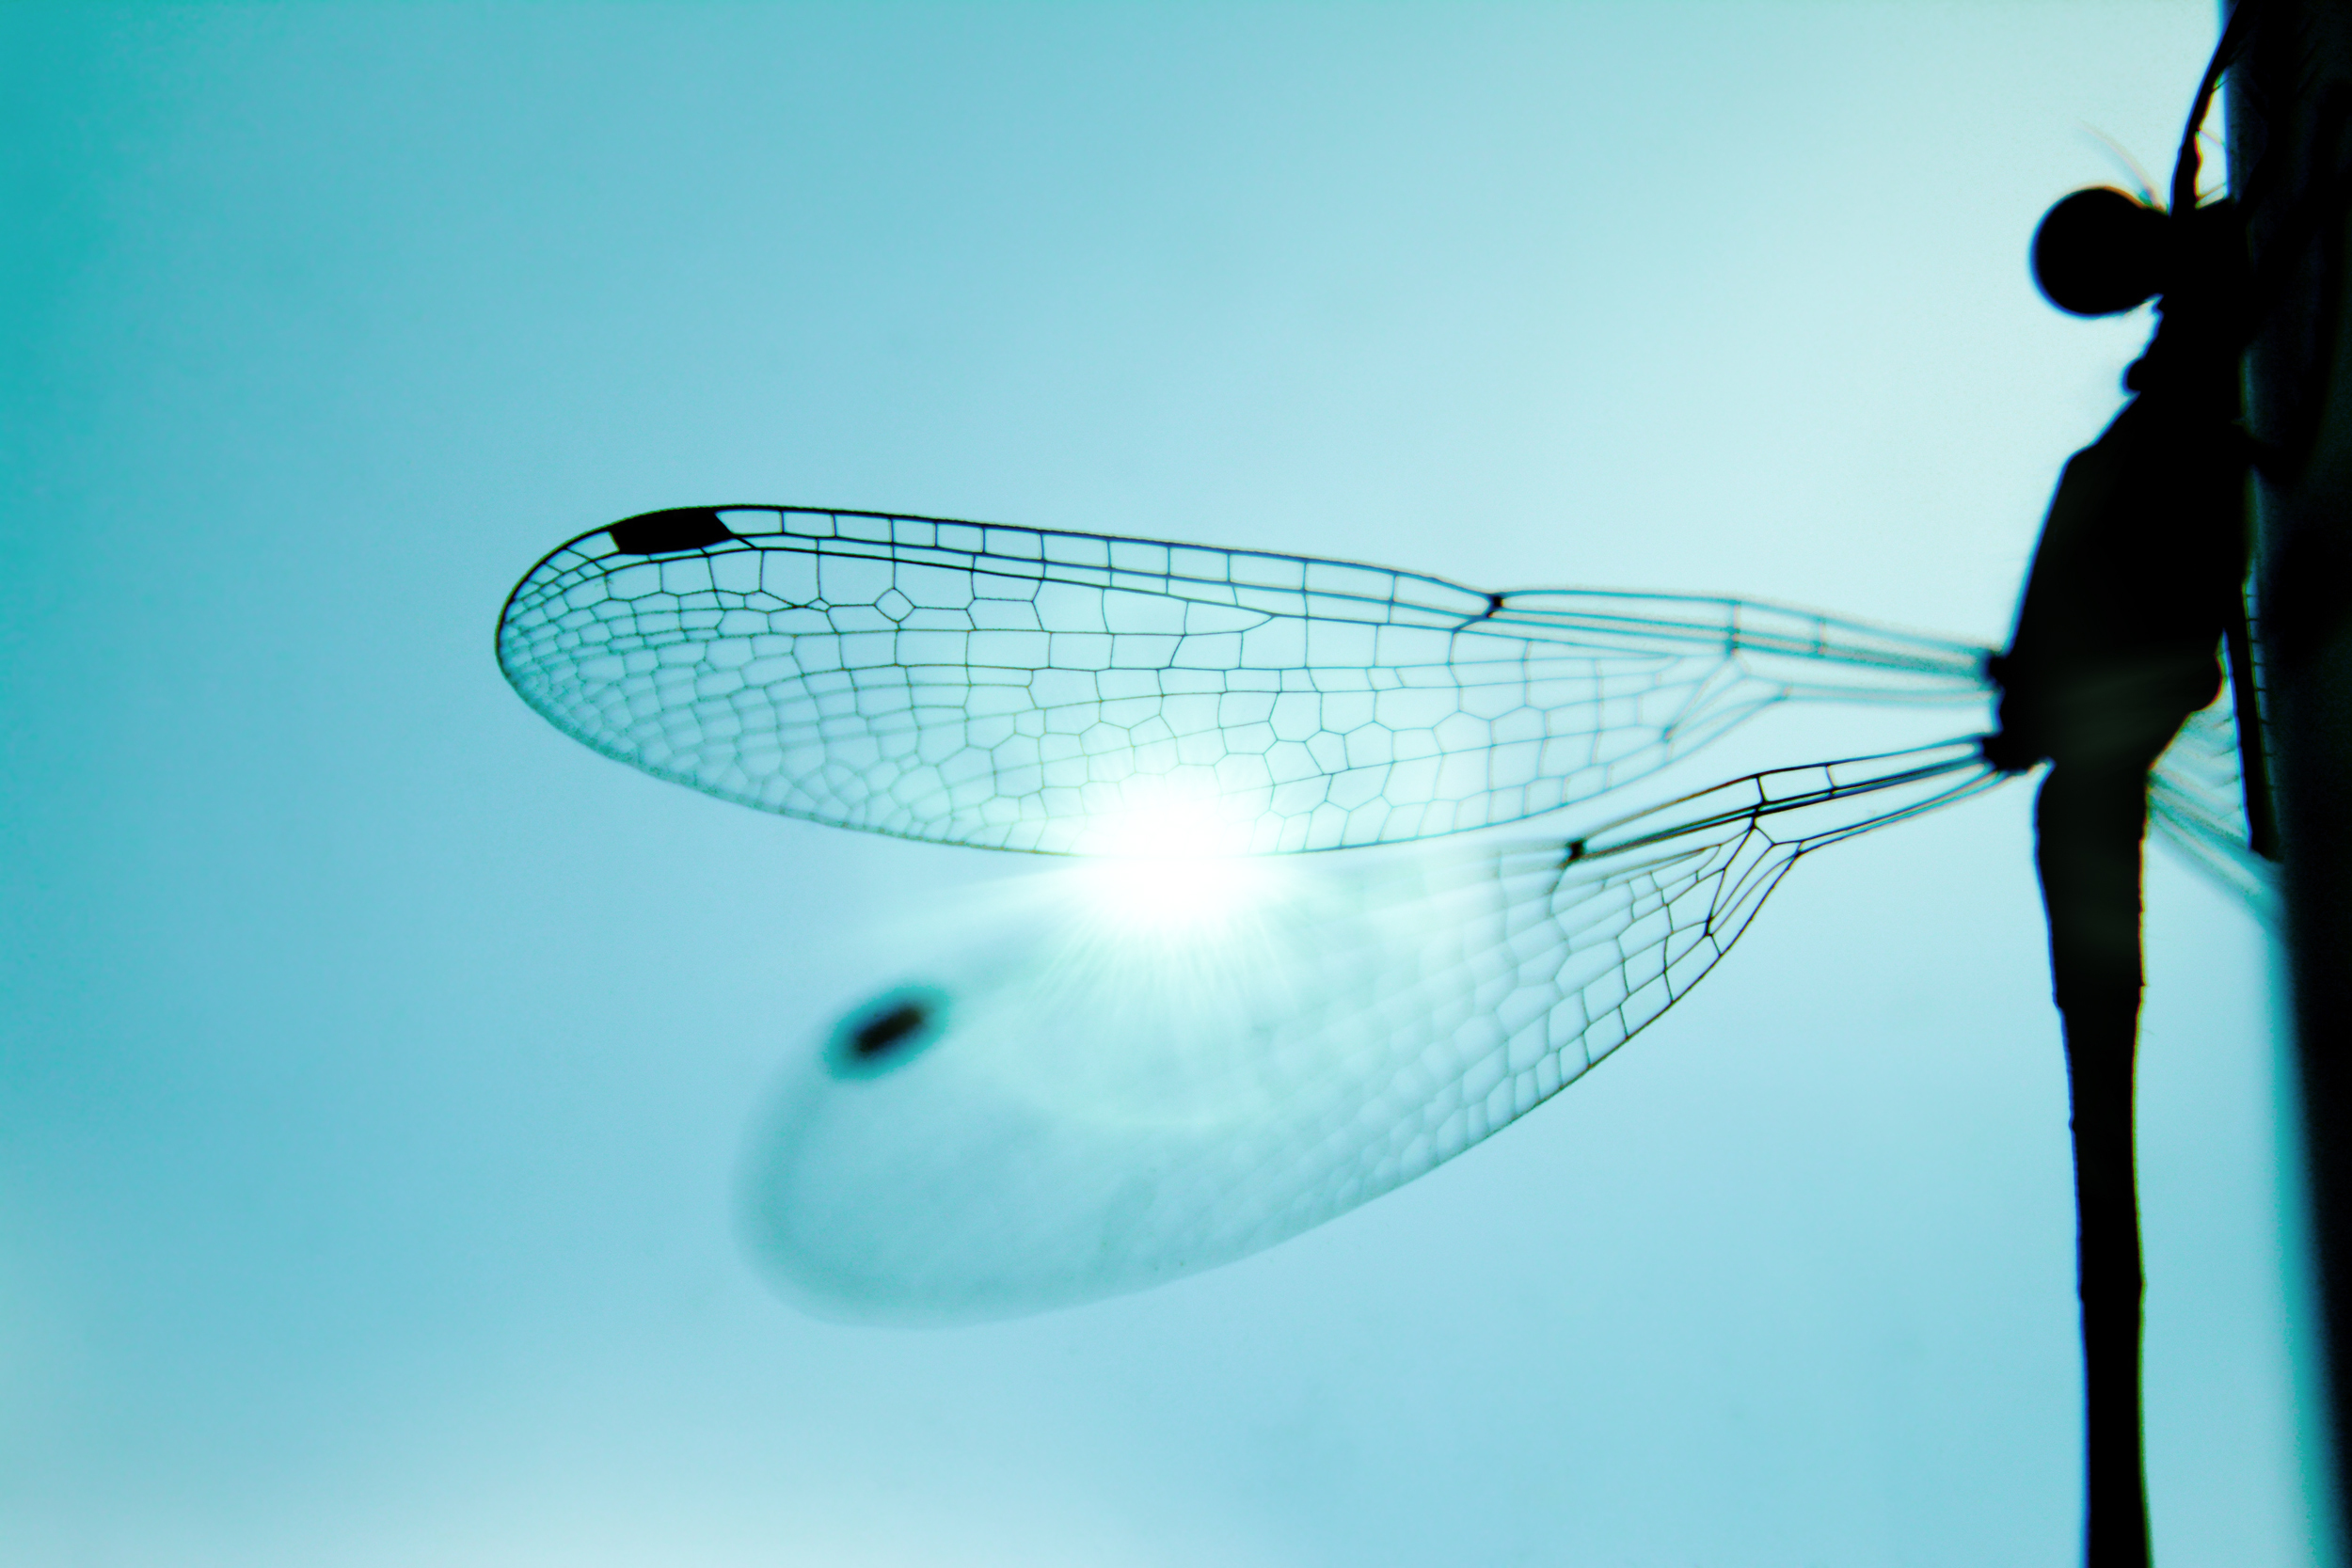 Lattice structures found in a dragonfly's wings. Photo via Shutterstock.